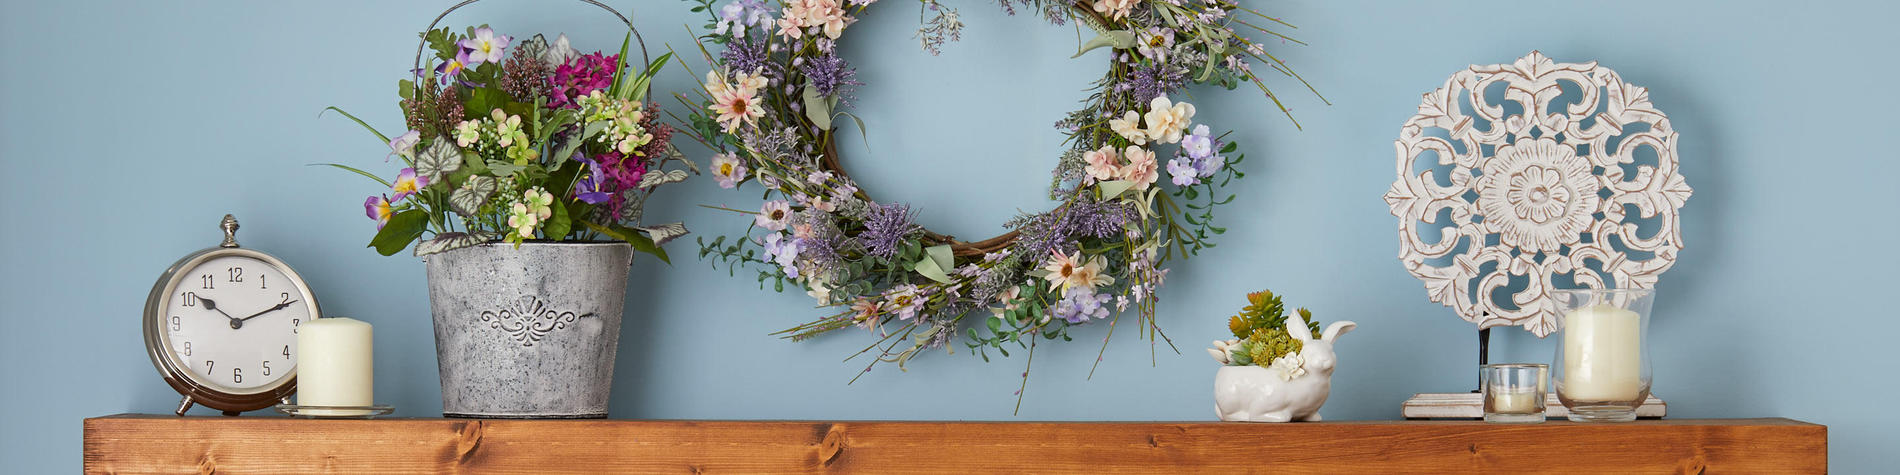 Hop into Spring with festive decor